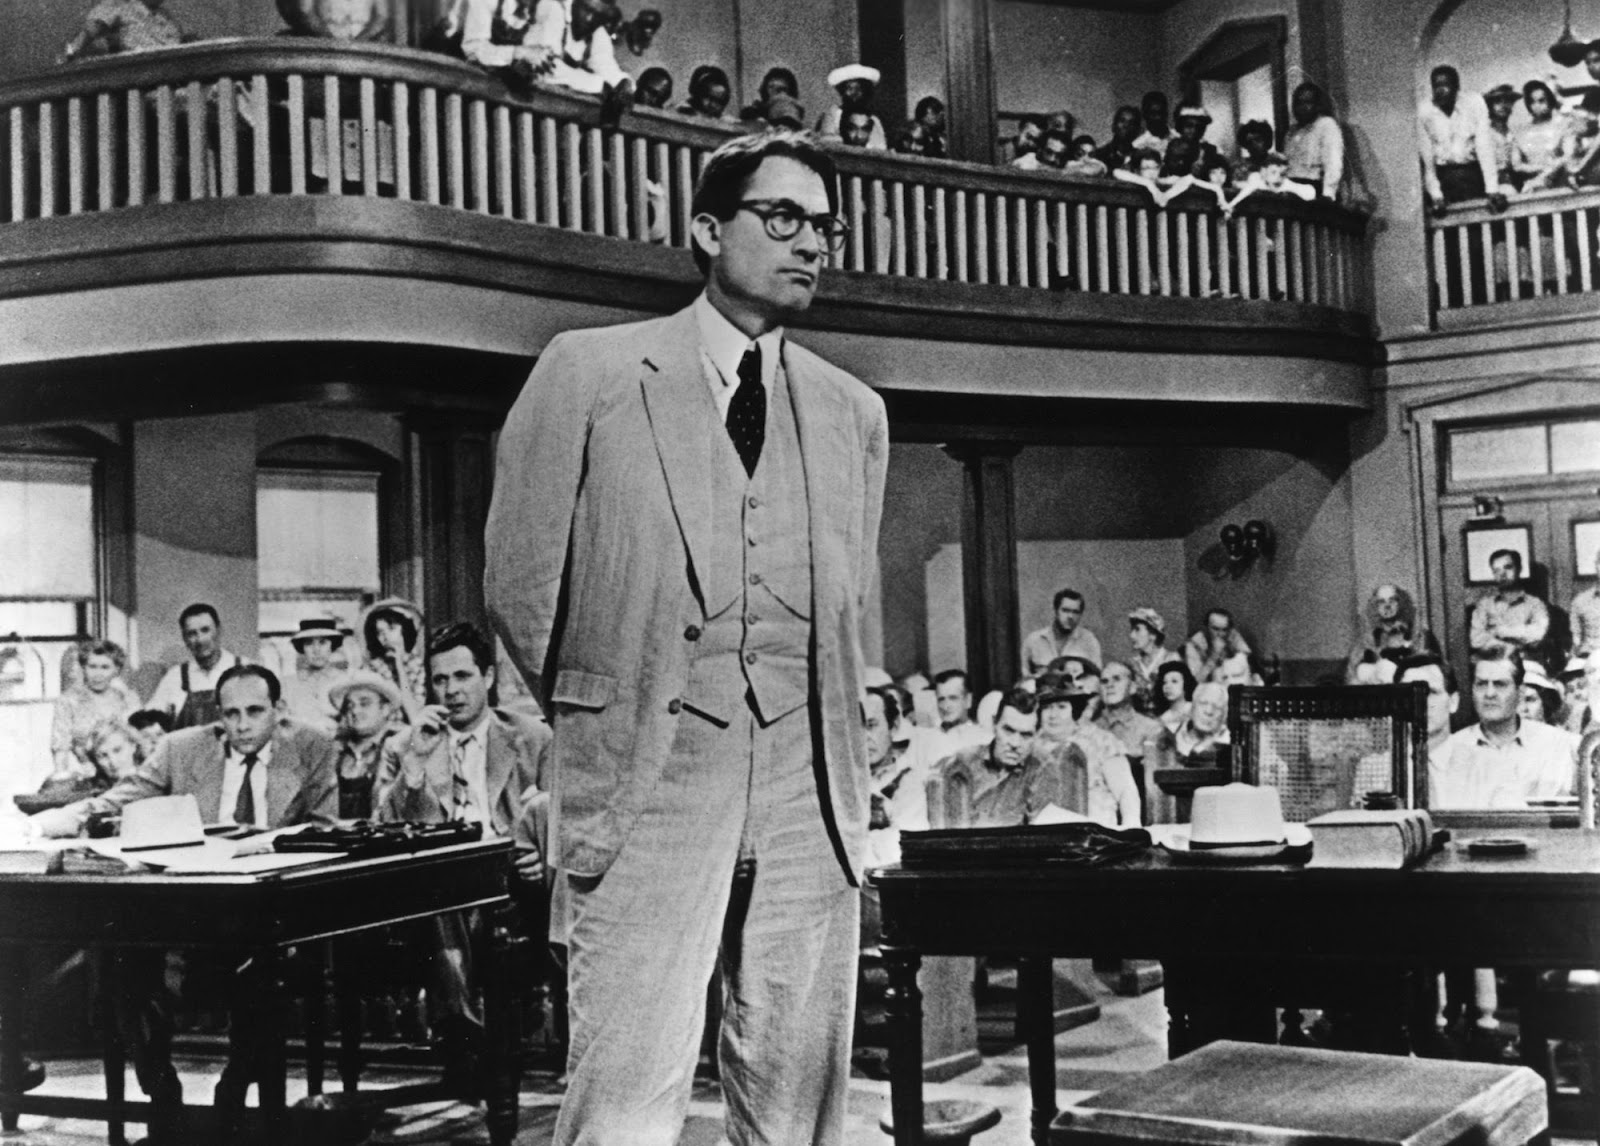 atticus an exemplary father Atticus finch is one of the most beloved characters in american literature   atticus is probably best remembered as an exemplary father.